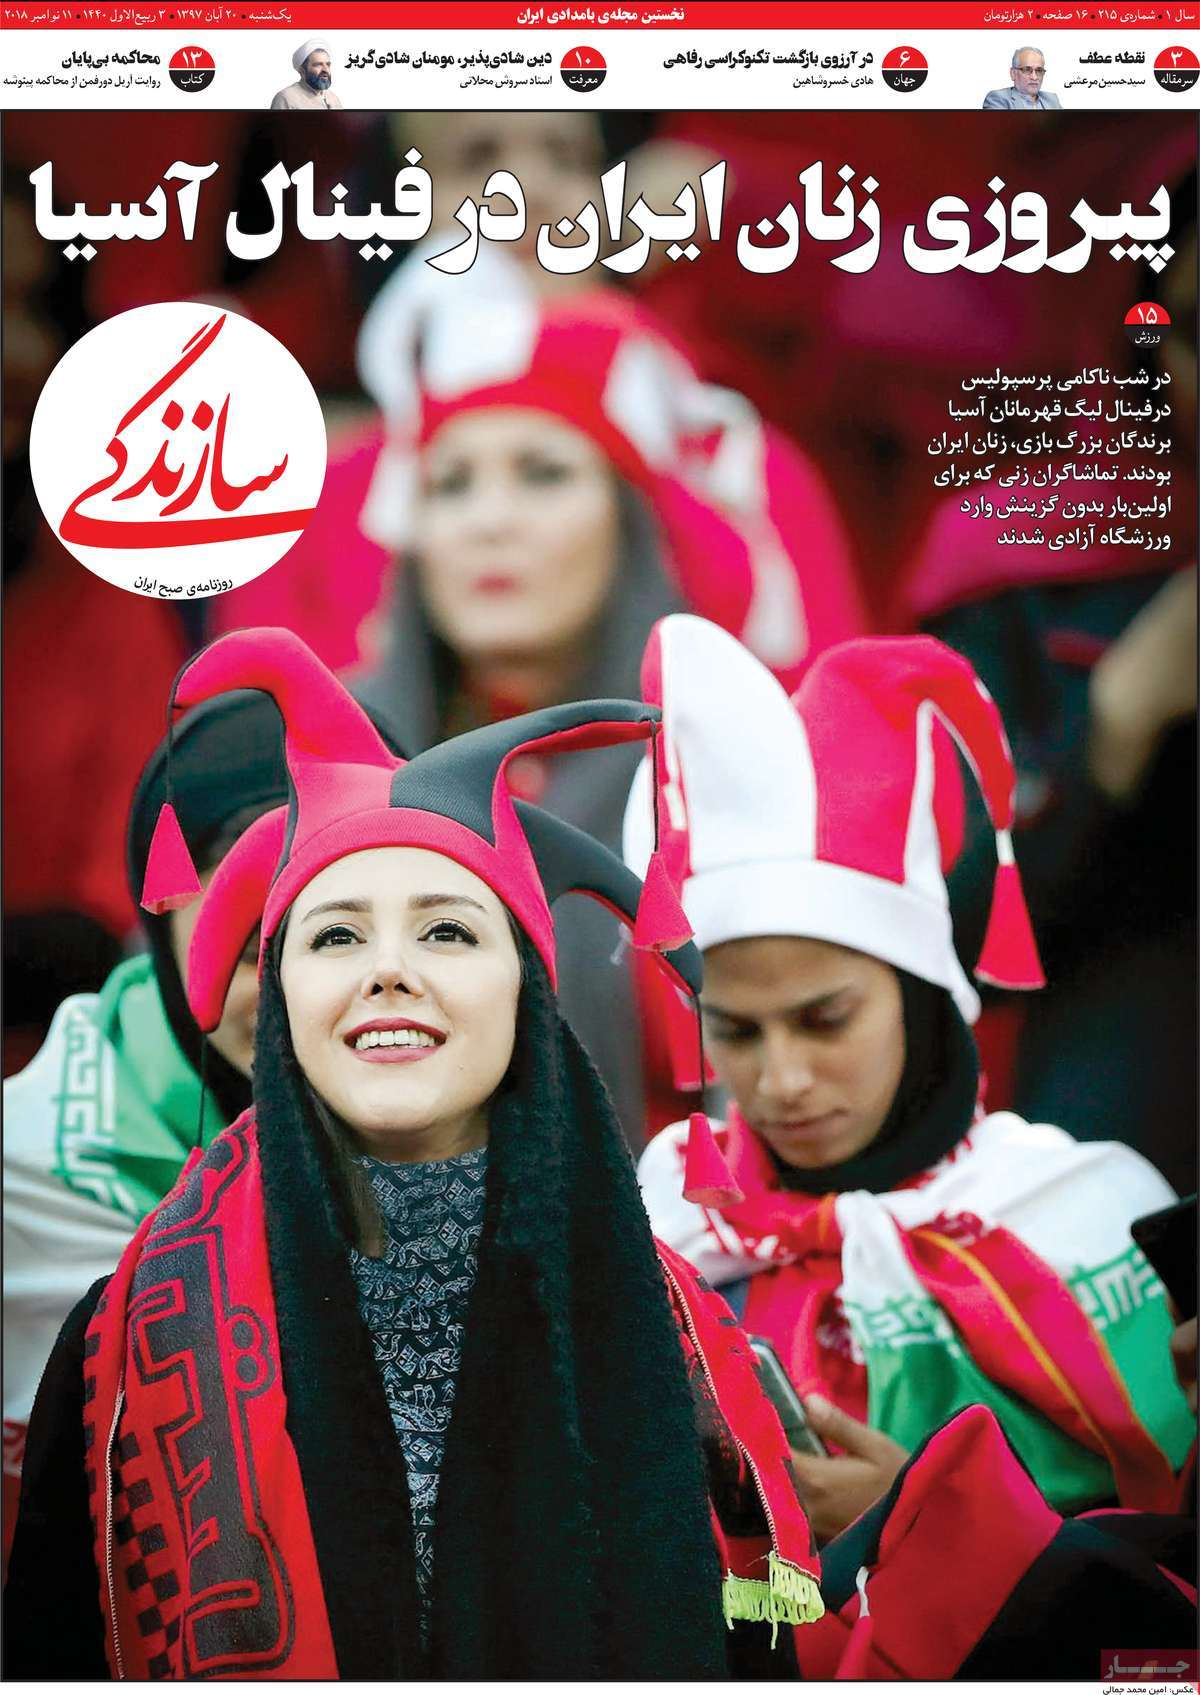 A Look at Iranian Newspaper Front Pages on November 11